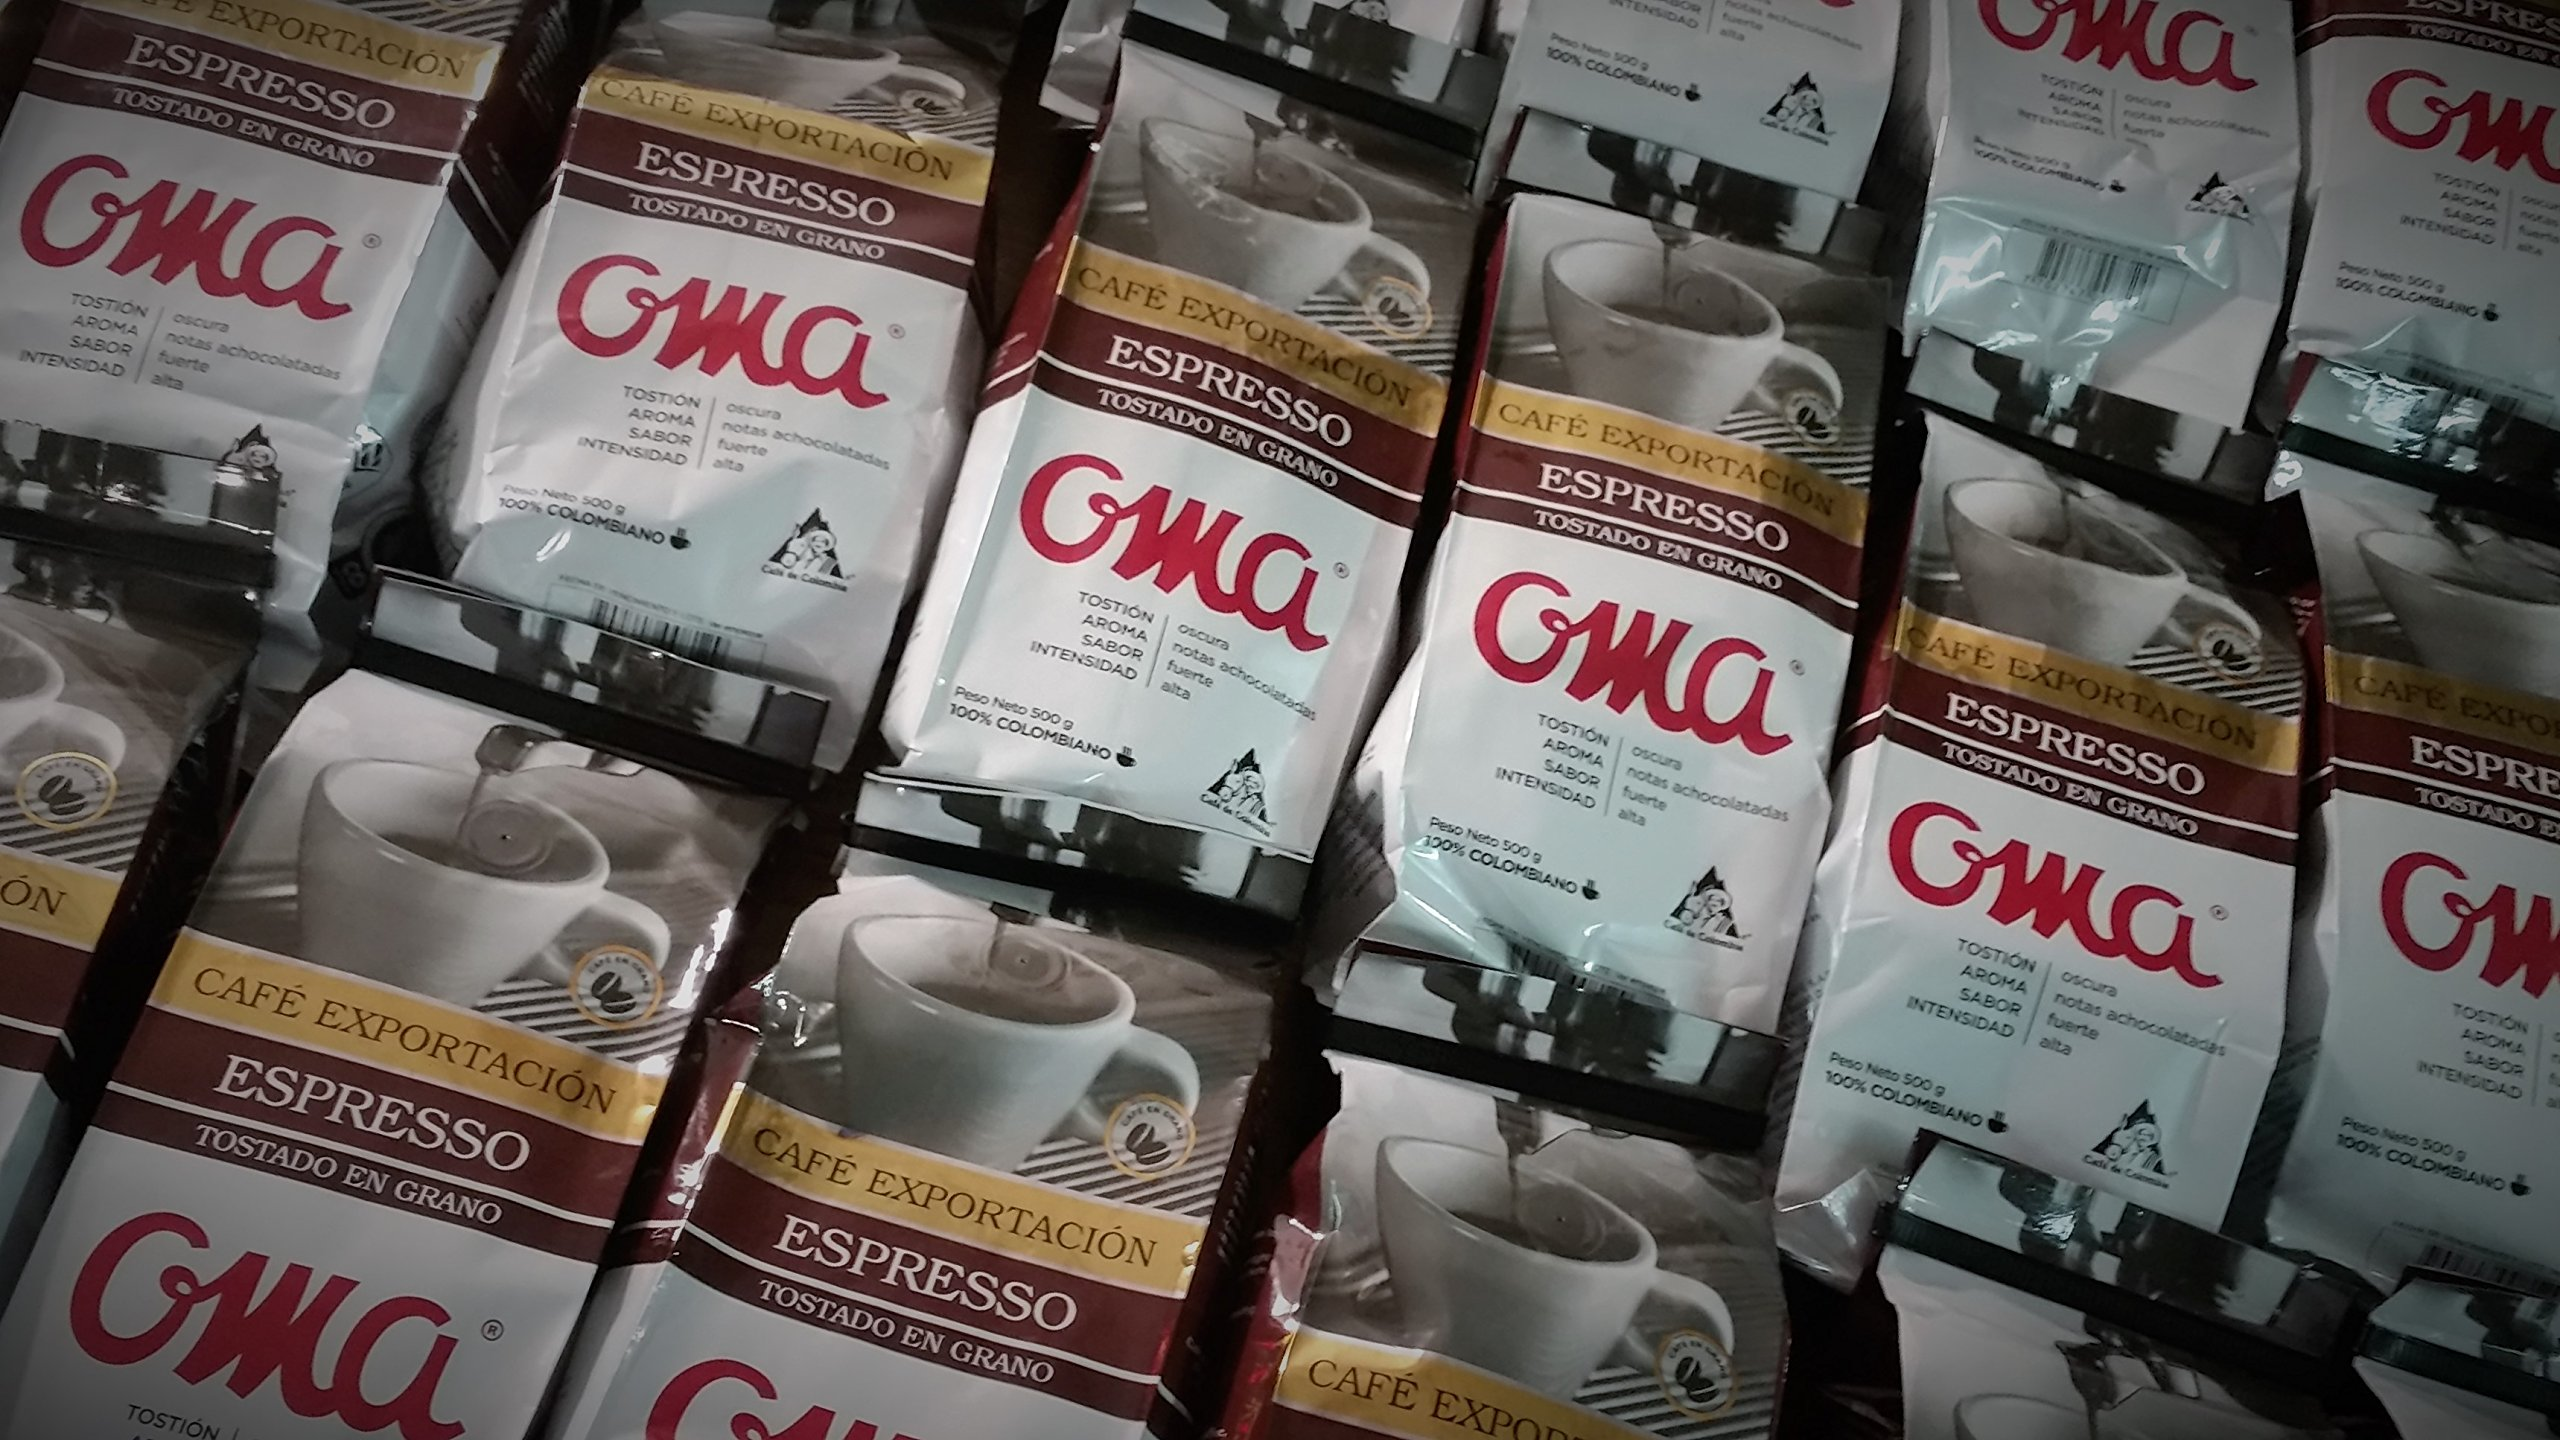 Coffee Dark Roasted OMA ESPRESSO Beans 10 pounds full BOX, Arabica Colombian Coffee Beans